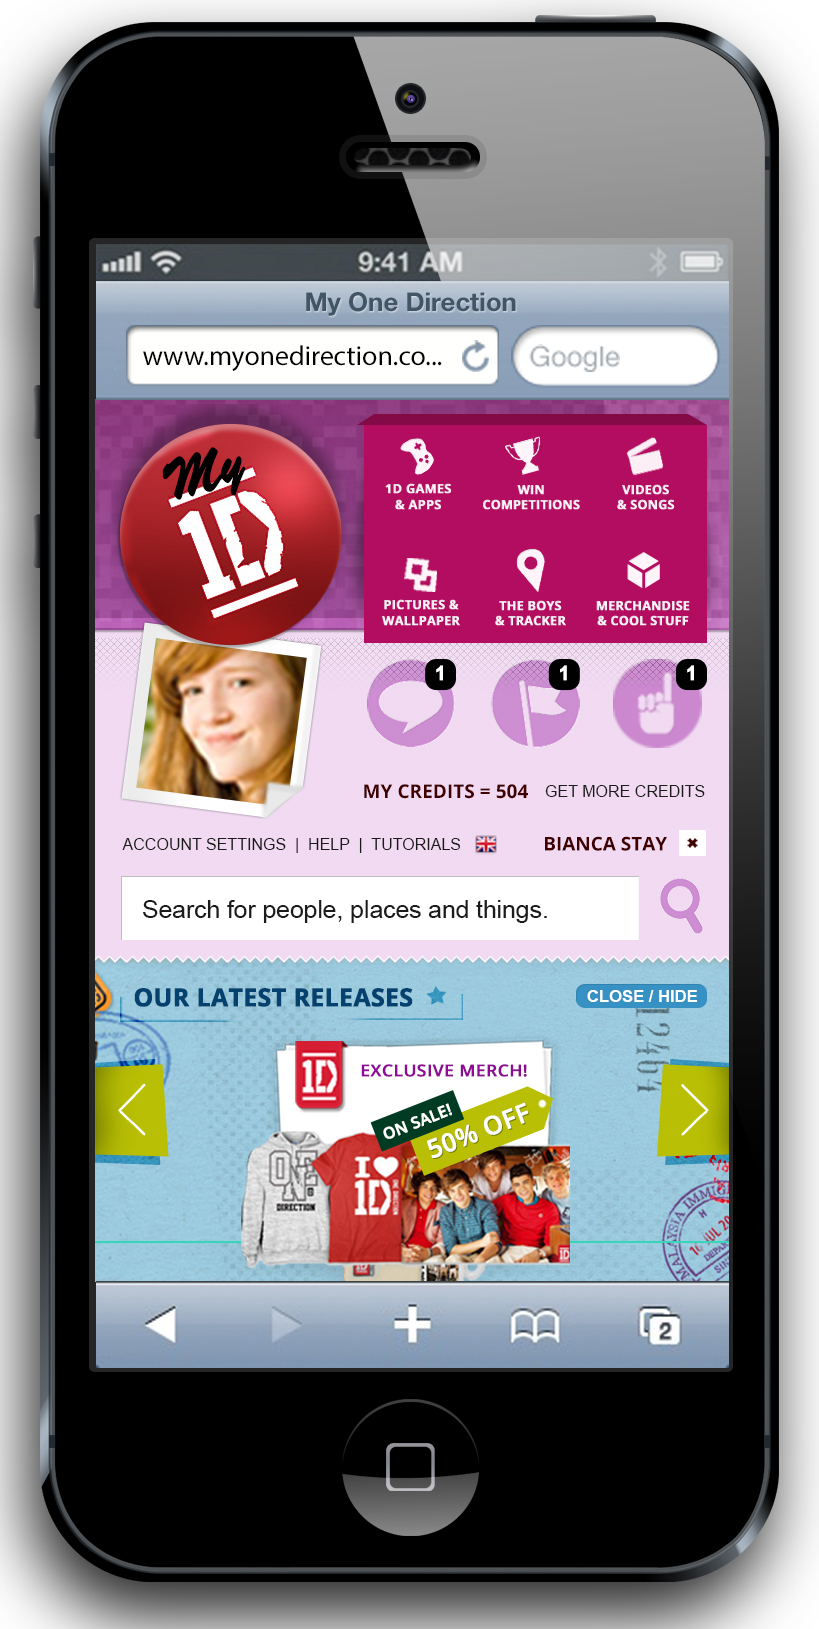 1d_mobile_home_001c